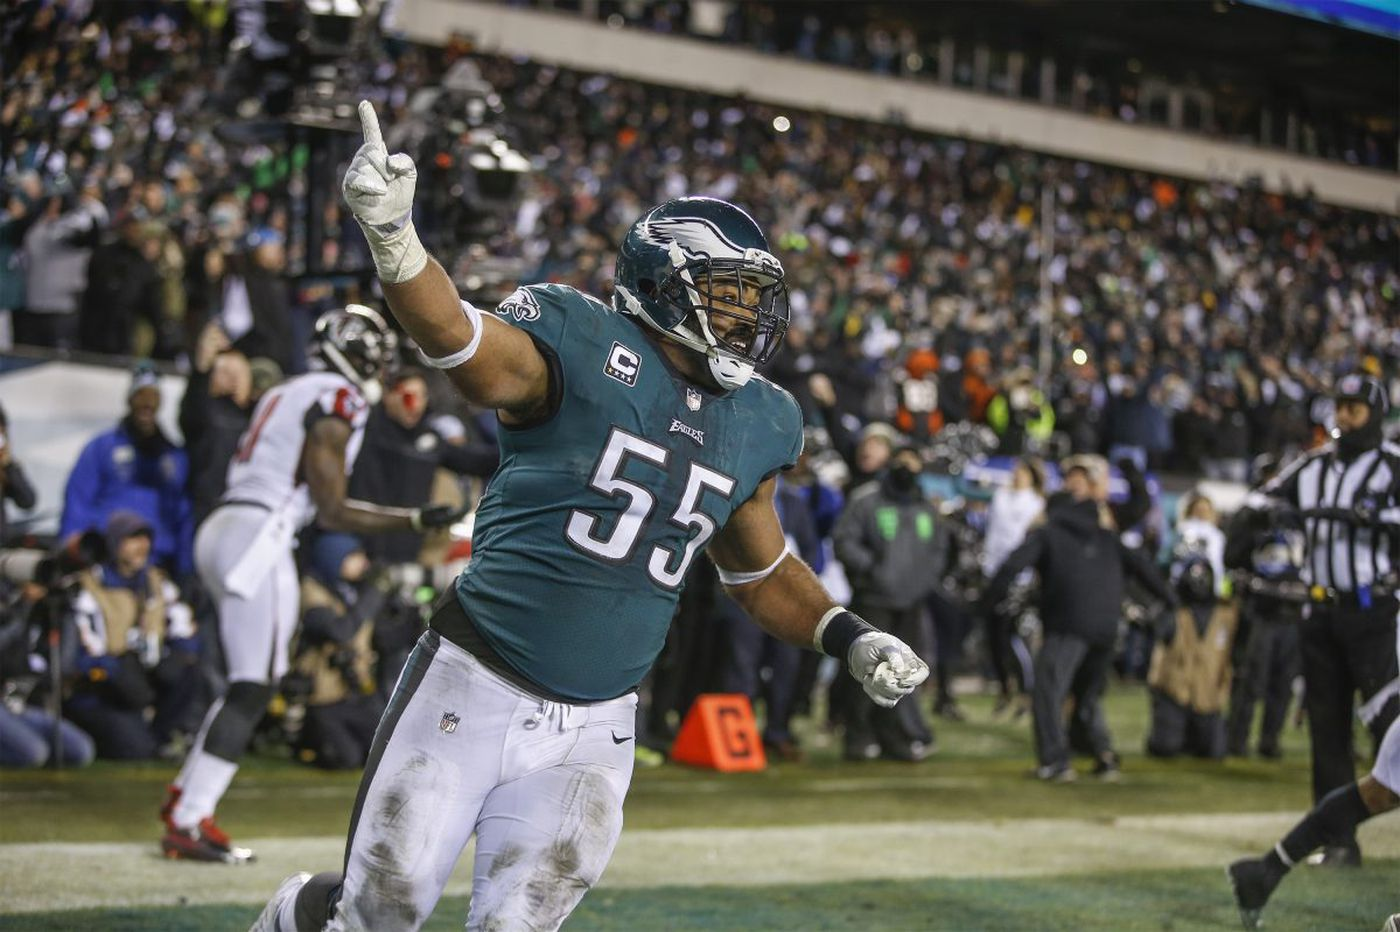 If Eagles can bottle their energy again, all bets are off against Vikings   David Murphy